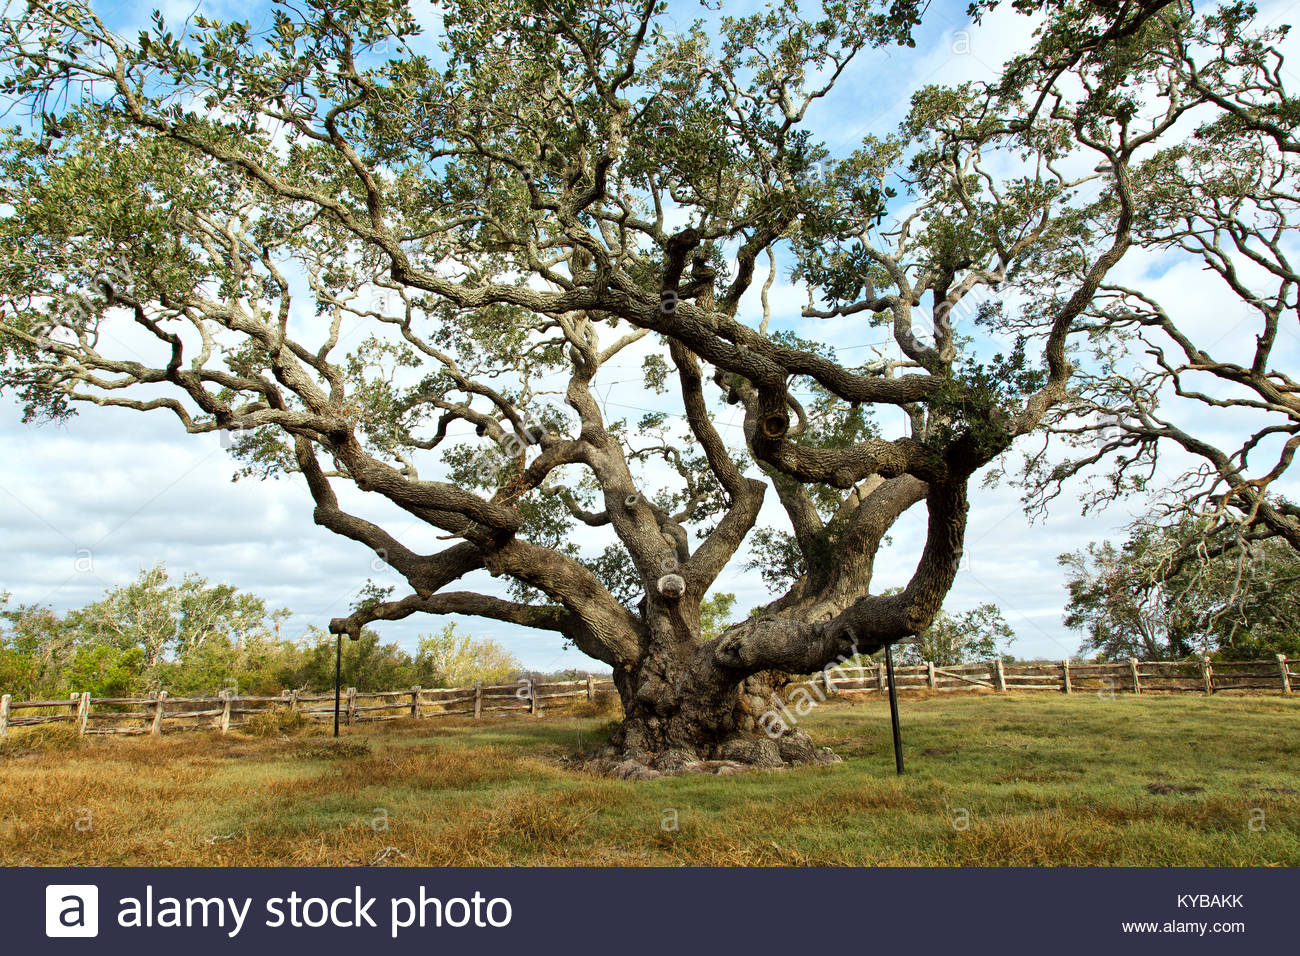 A funny thing-big-tree-southern-live-oak-quercus-virginiana-excess-1000-years-kybakk.jpg